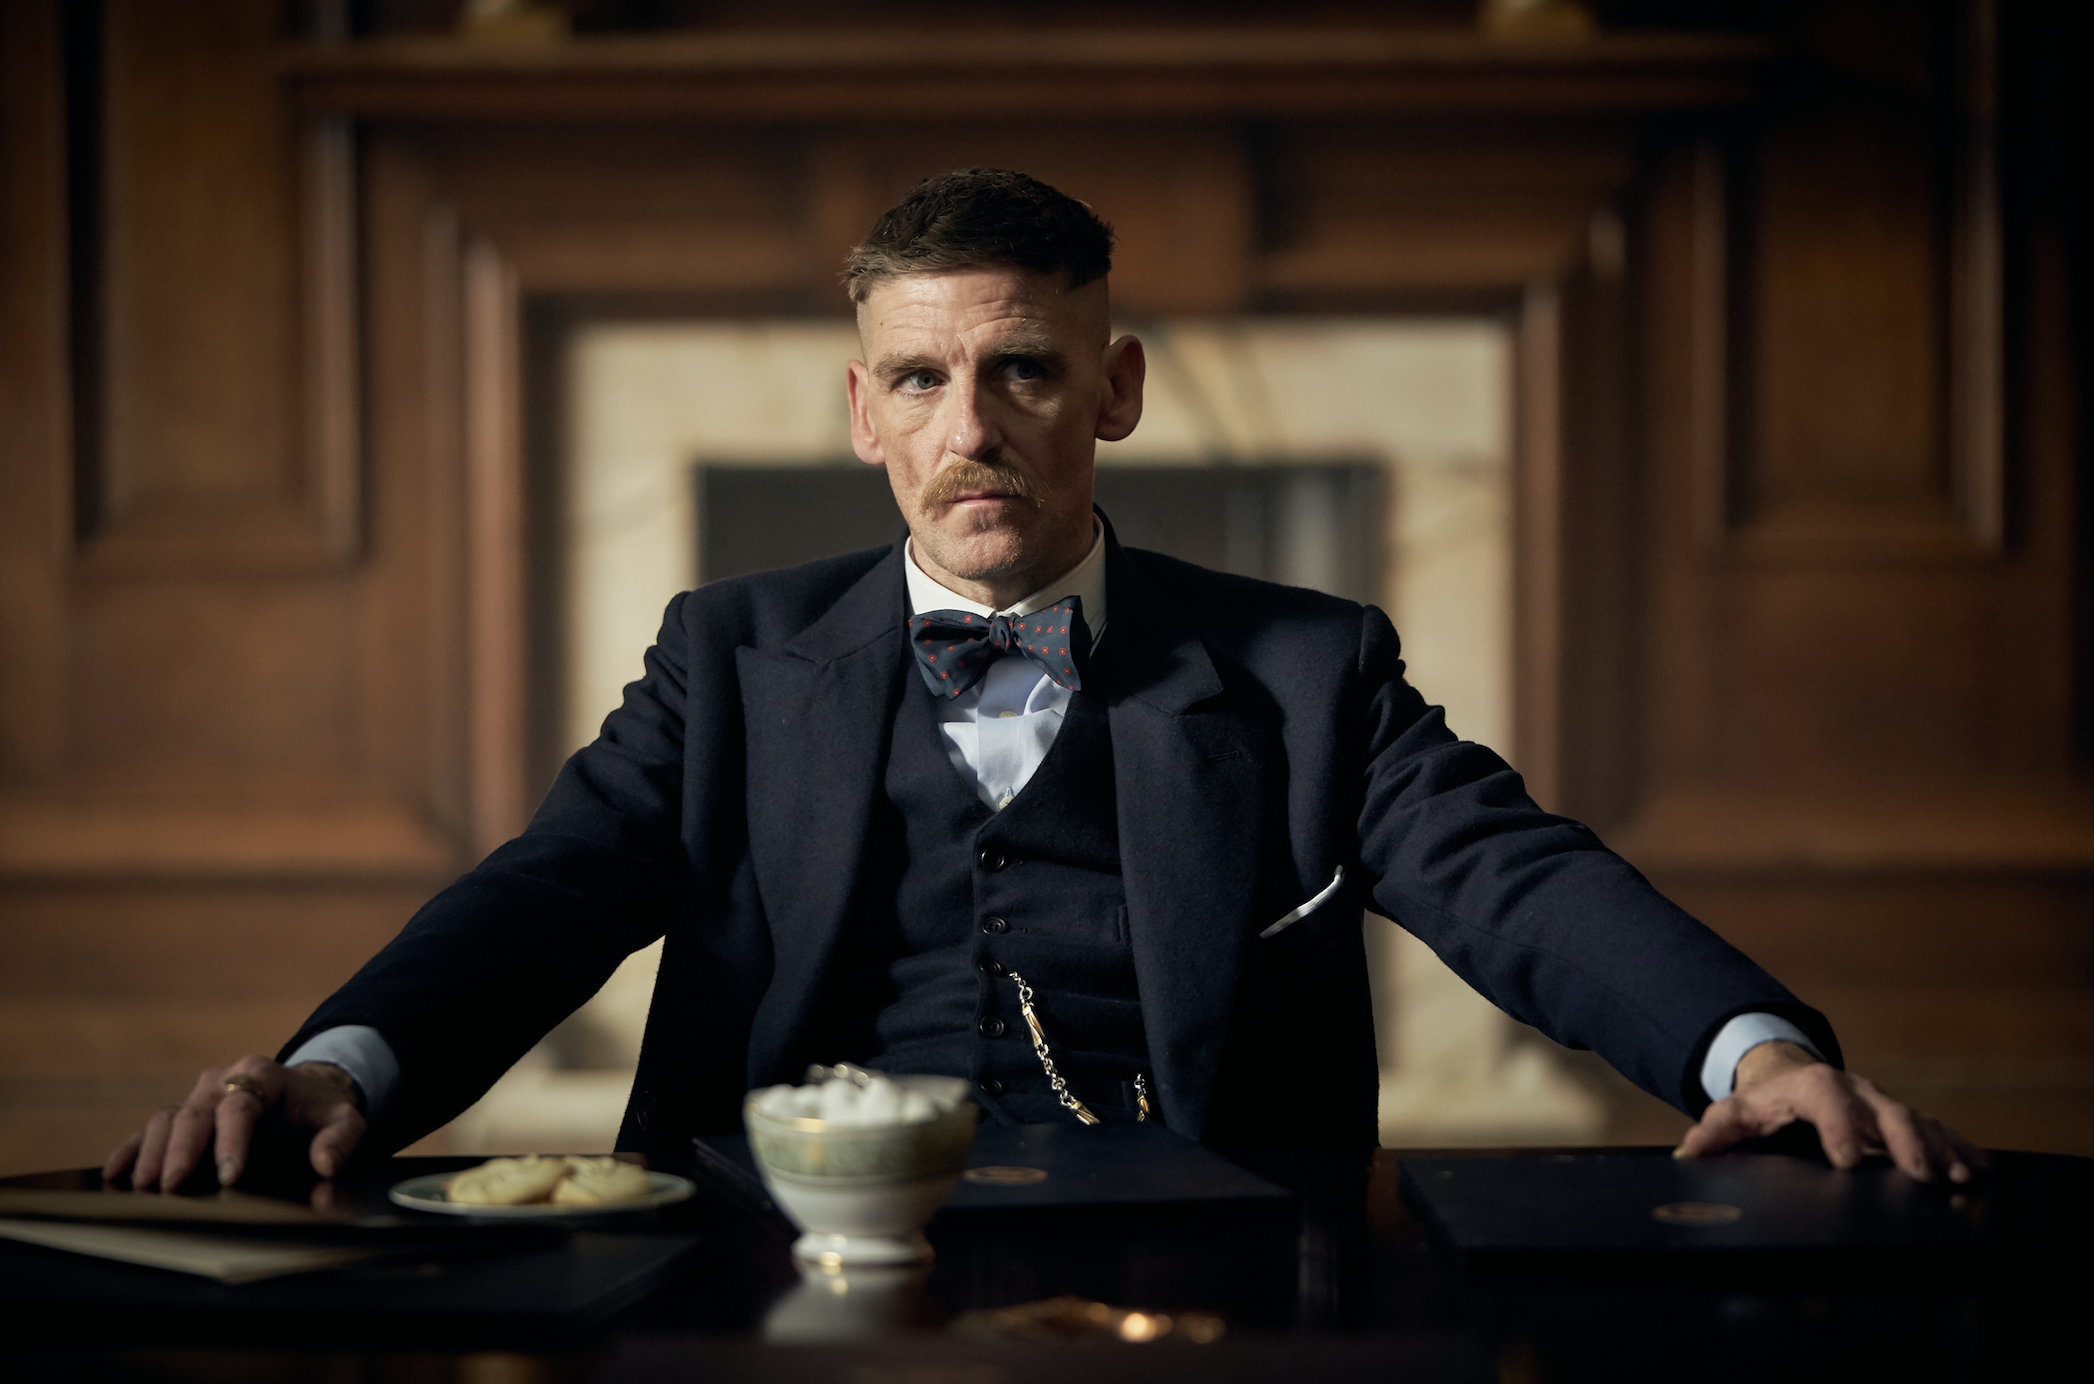 Peaky Blinders has pulled the same trick far too often